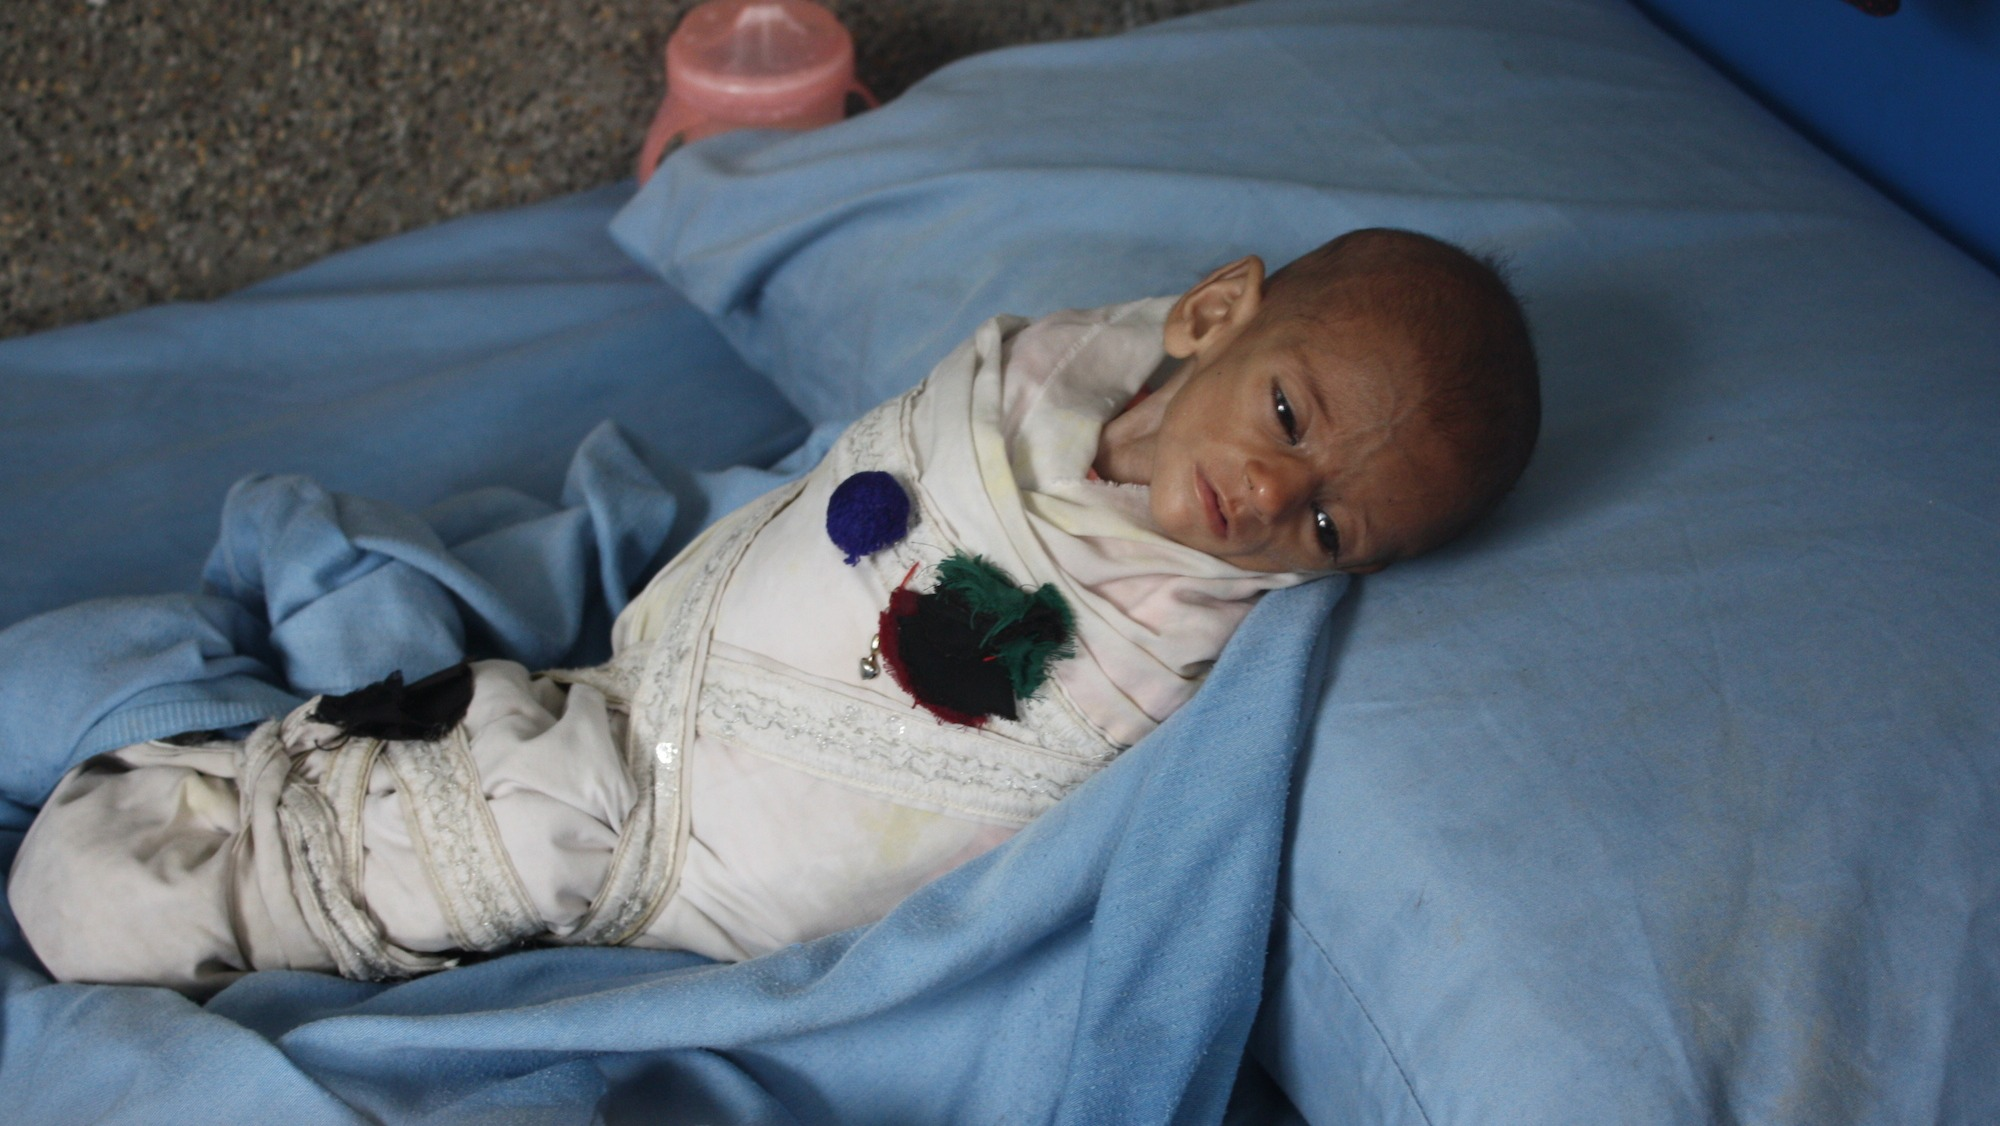 A severely malnourished child in the Afghan city of Jalalabad, east of the capital Kabul. Afghanistan has some of the highest rates of malnutrition in Asia.